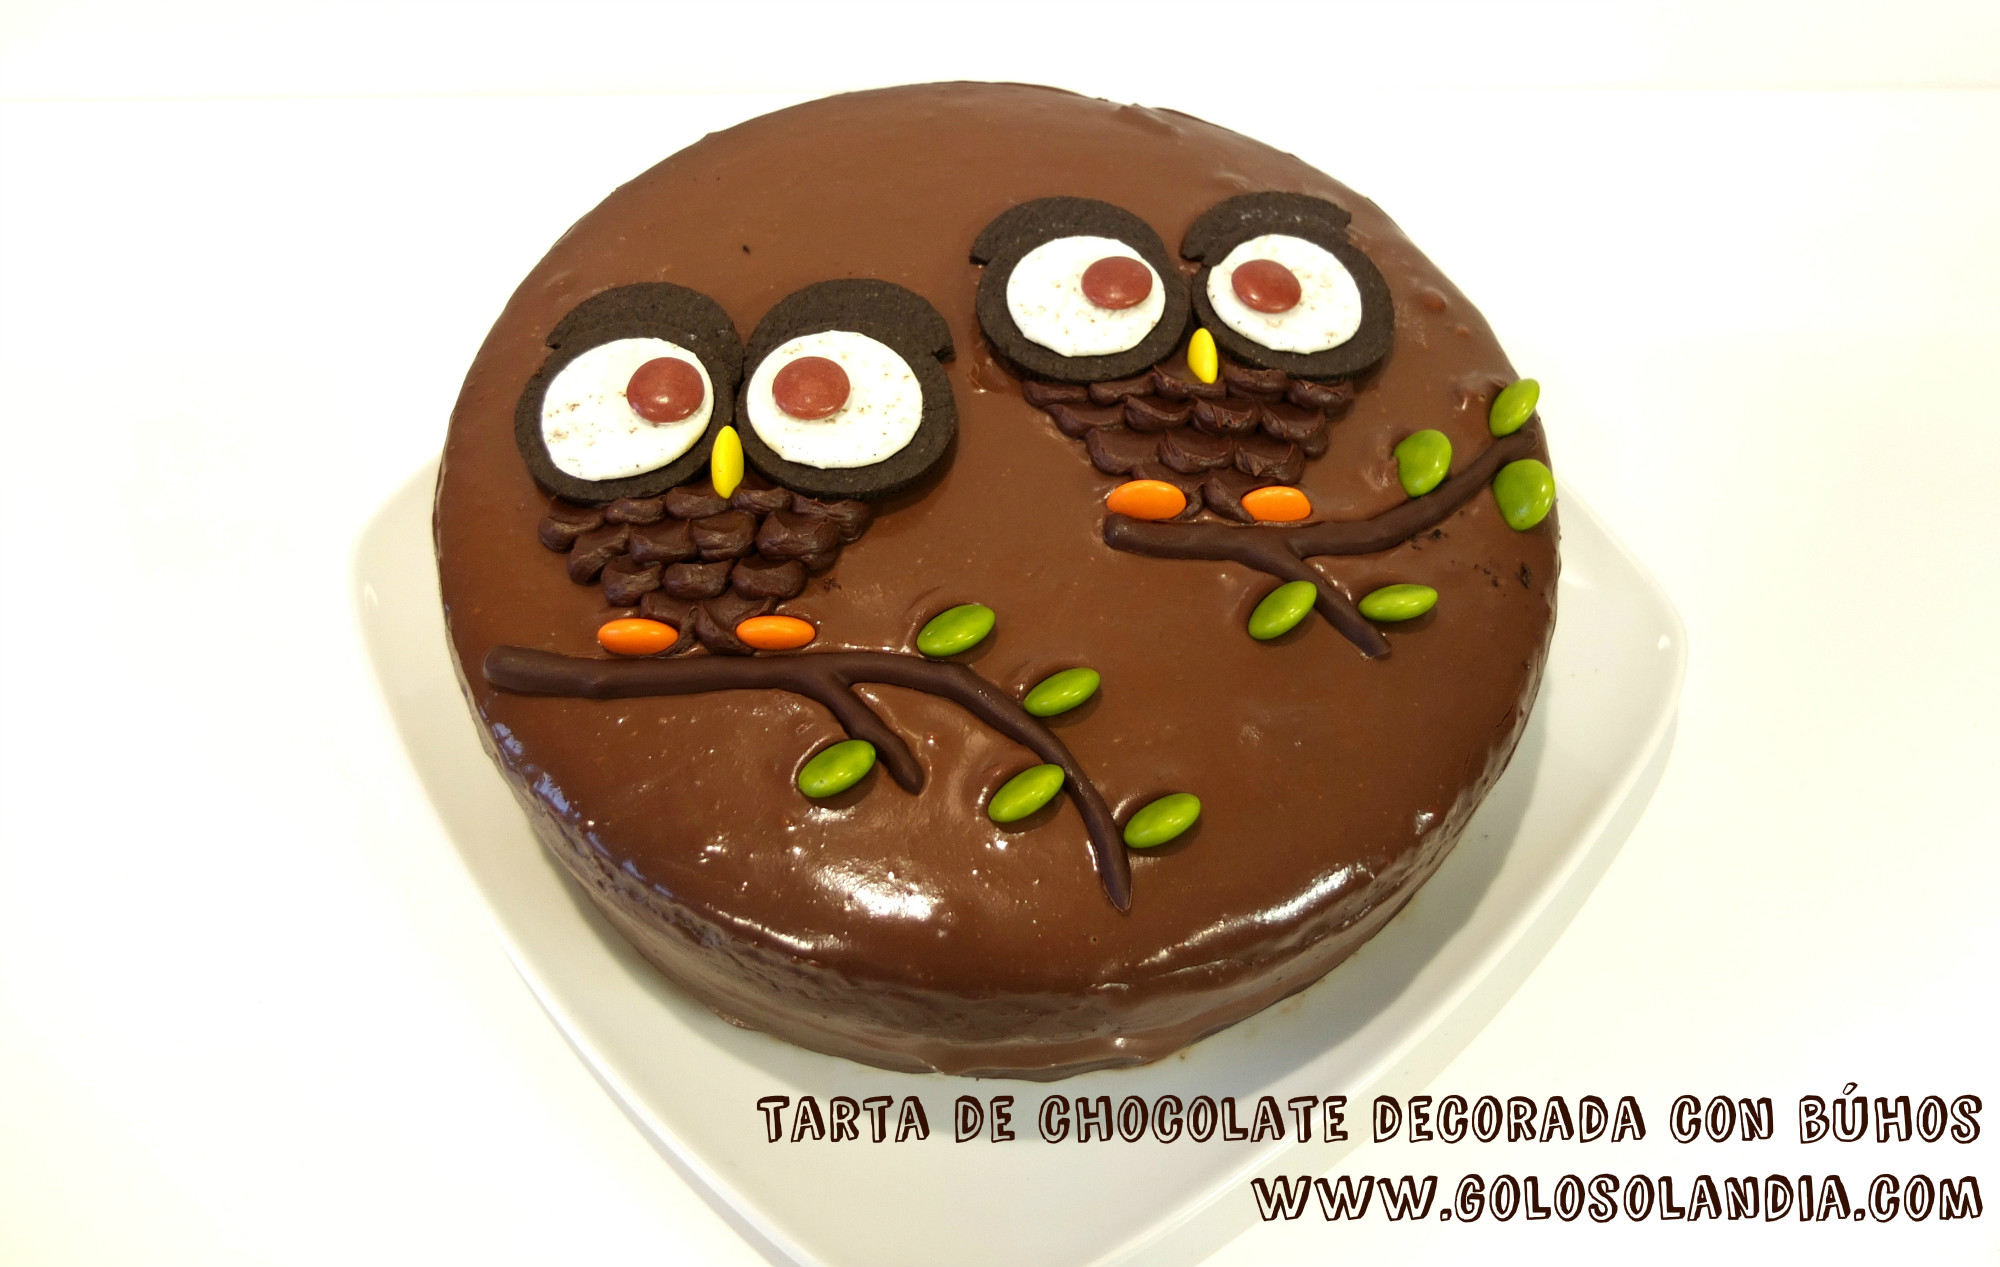 Tarta de chocolate decorada con búhos